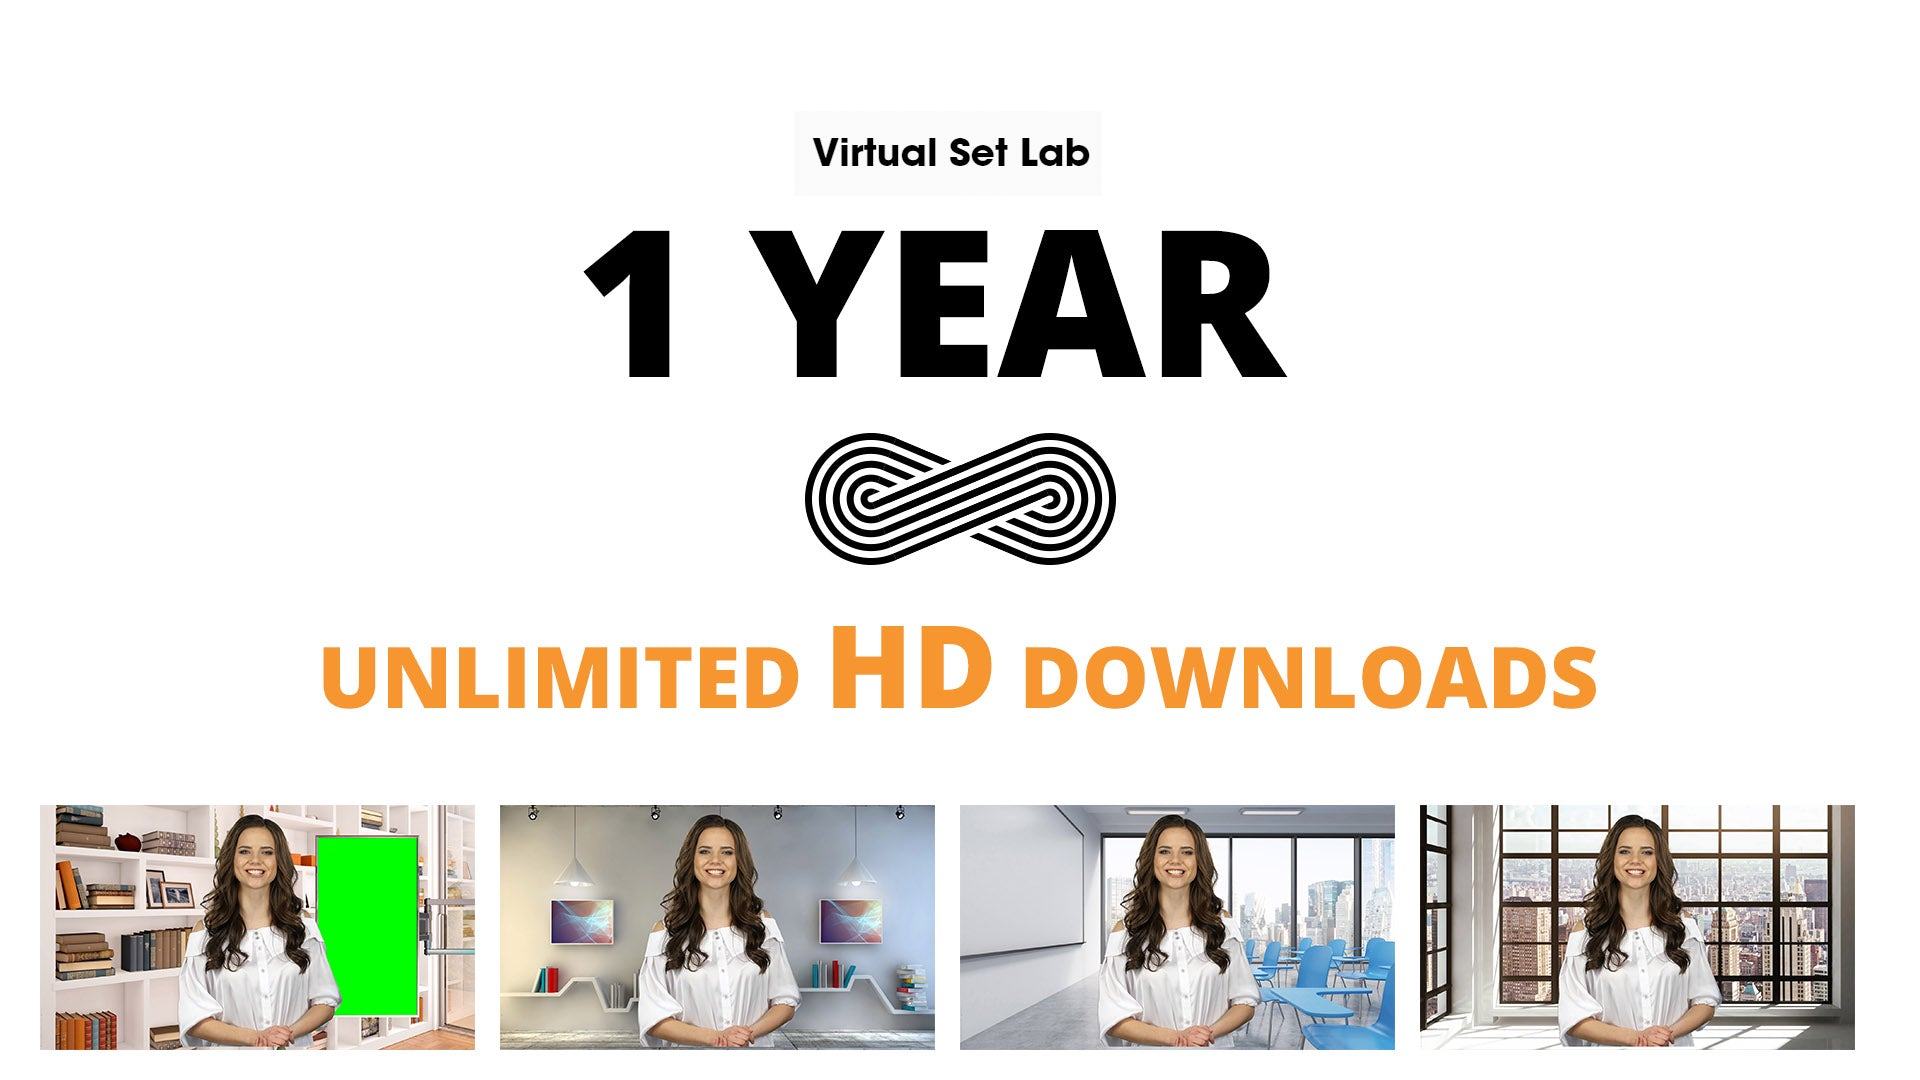 NEW! -  1 Year HD Unlimited Download Access - $20 per month